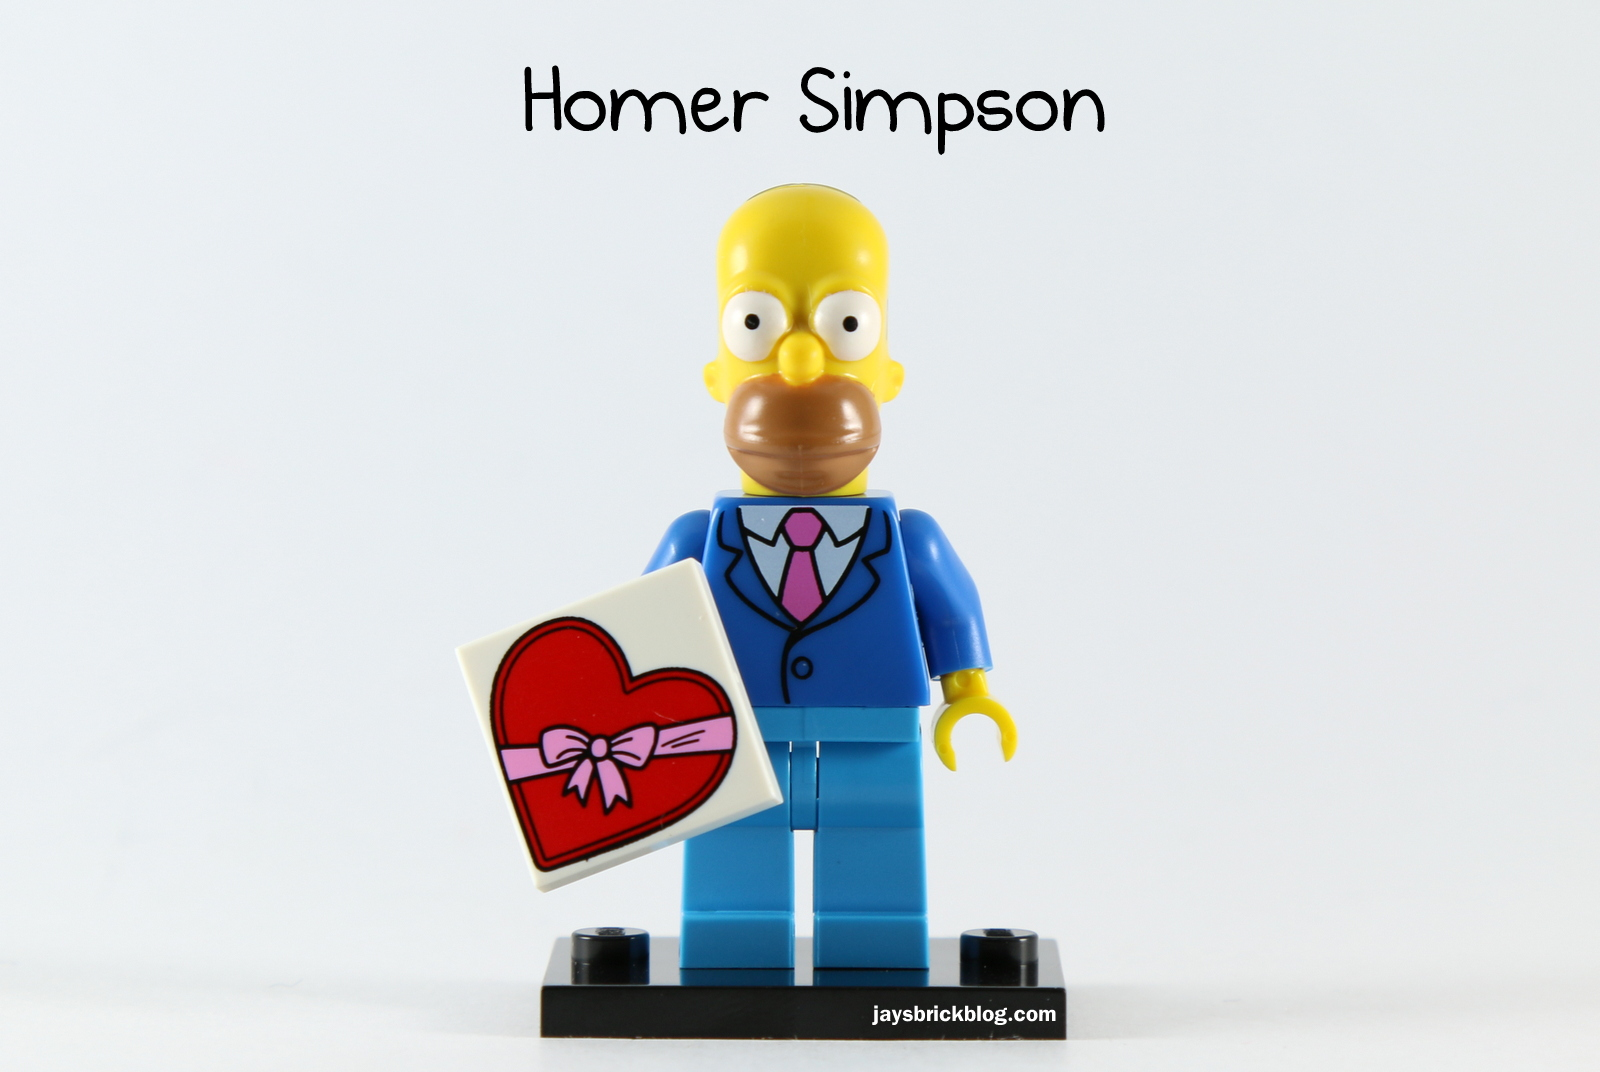 Review Lego Simpsons Minifigures Series 2 Blok Creative Toys Isi 100 Pcs Homer Simpson Suit And Tie Minifigure